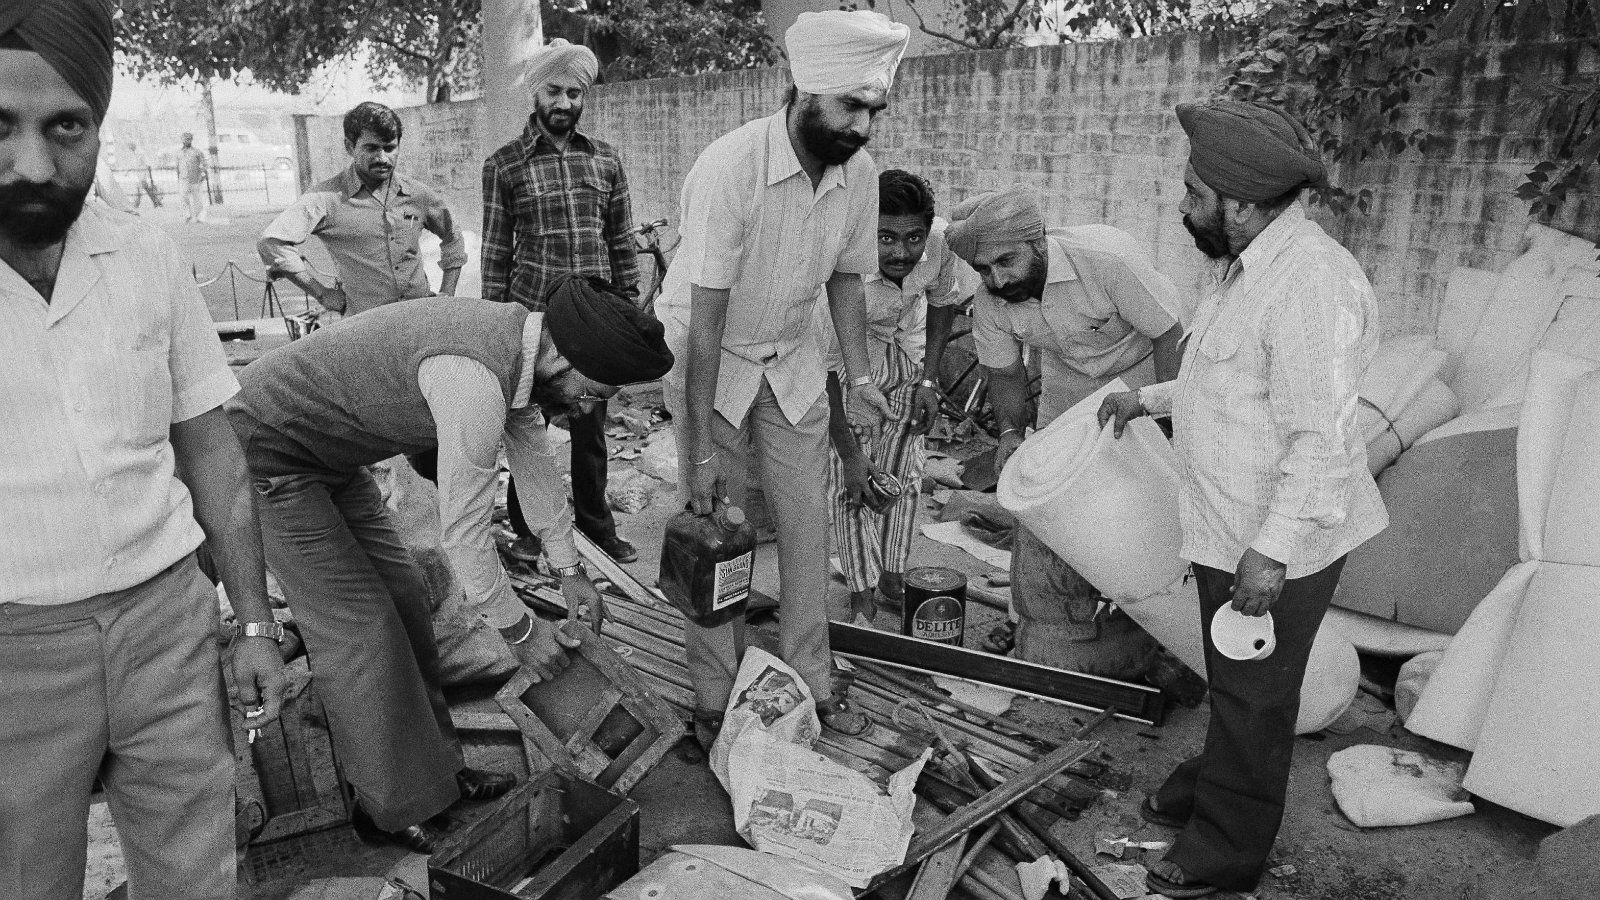 I lived through the Sikh riots—and 30 years later, I'm not ready to